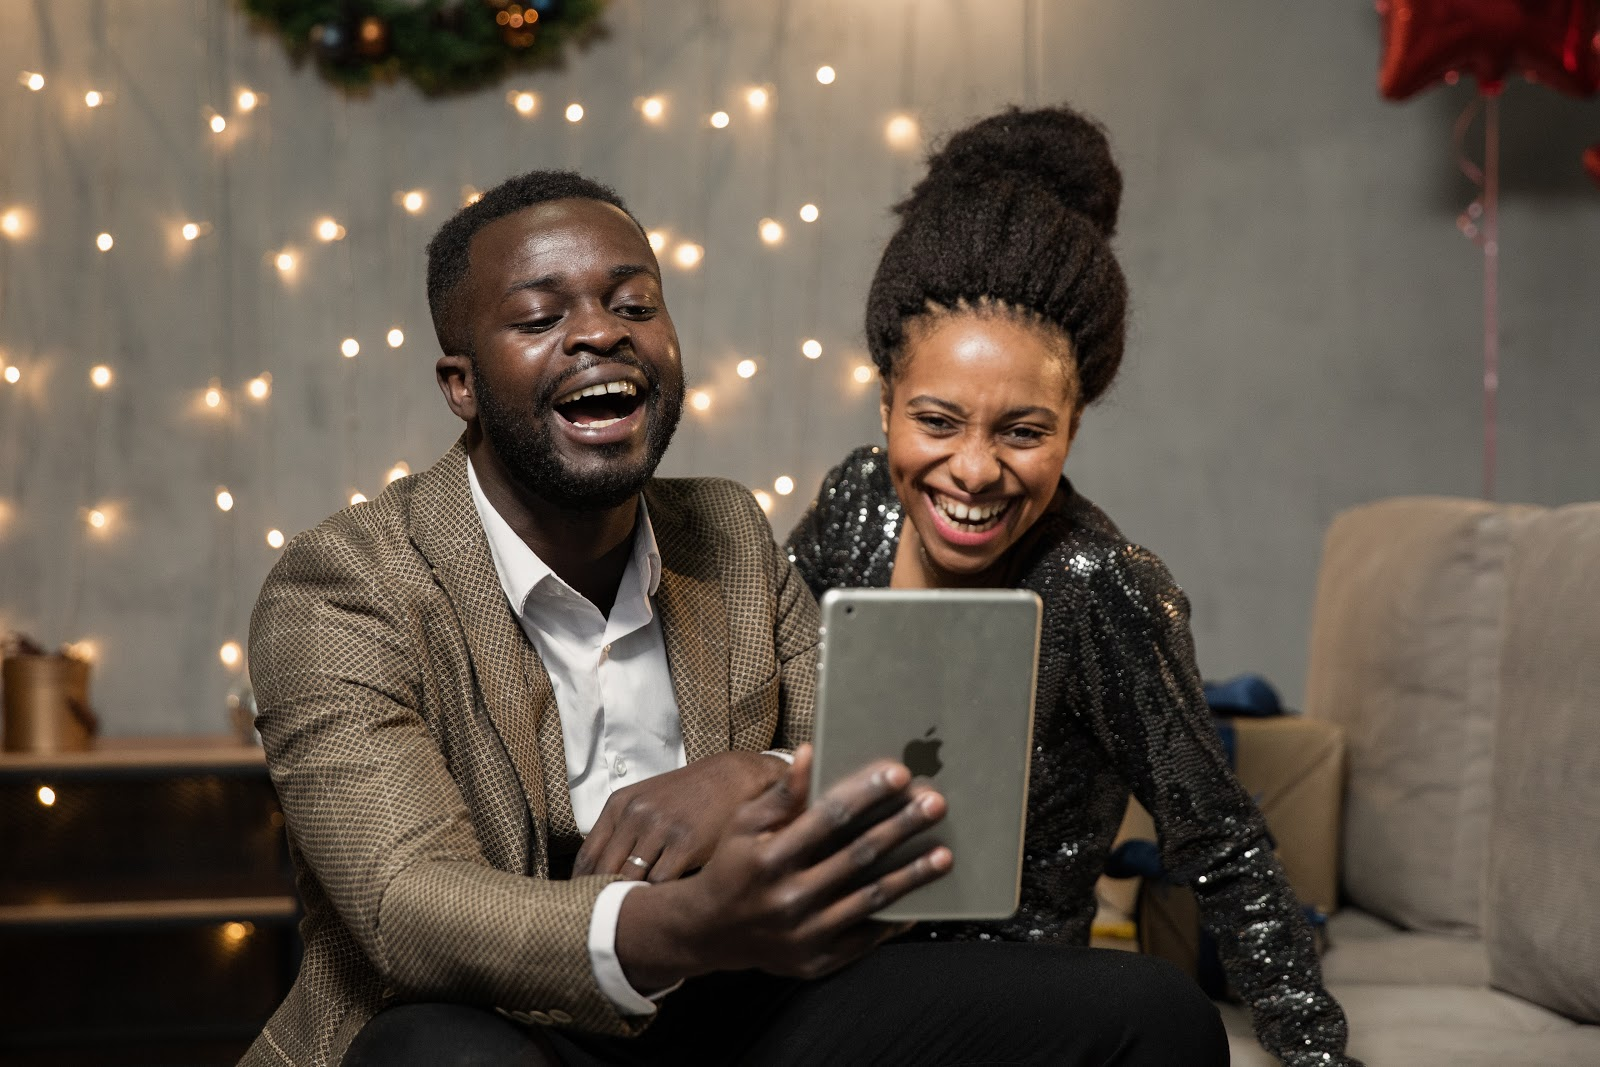 man and woman laughing while holding iPad